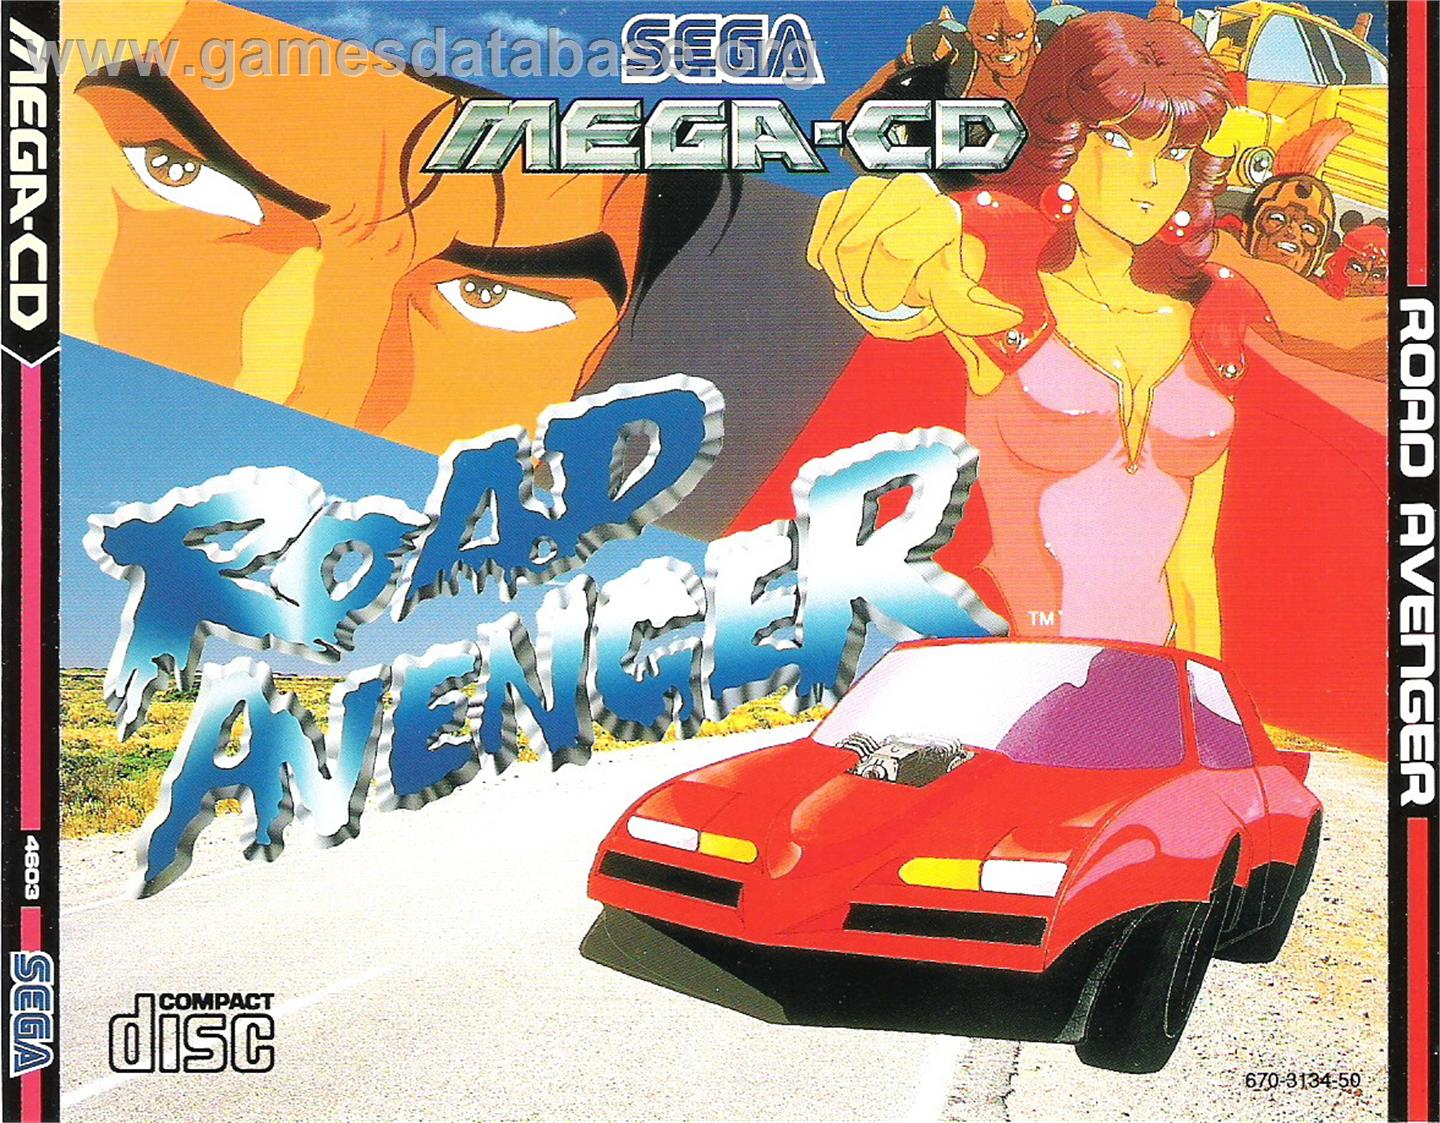 Road Avenger - Sega CD - Artwork - Box